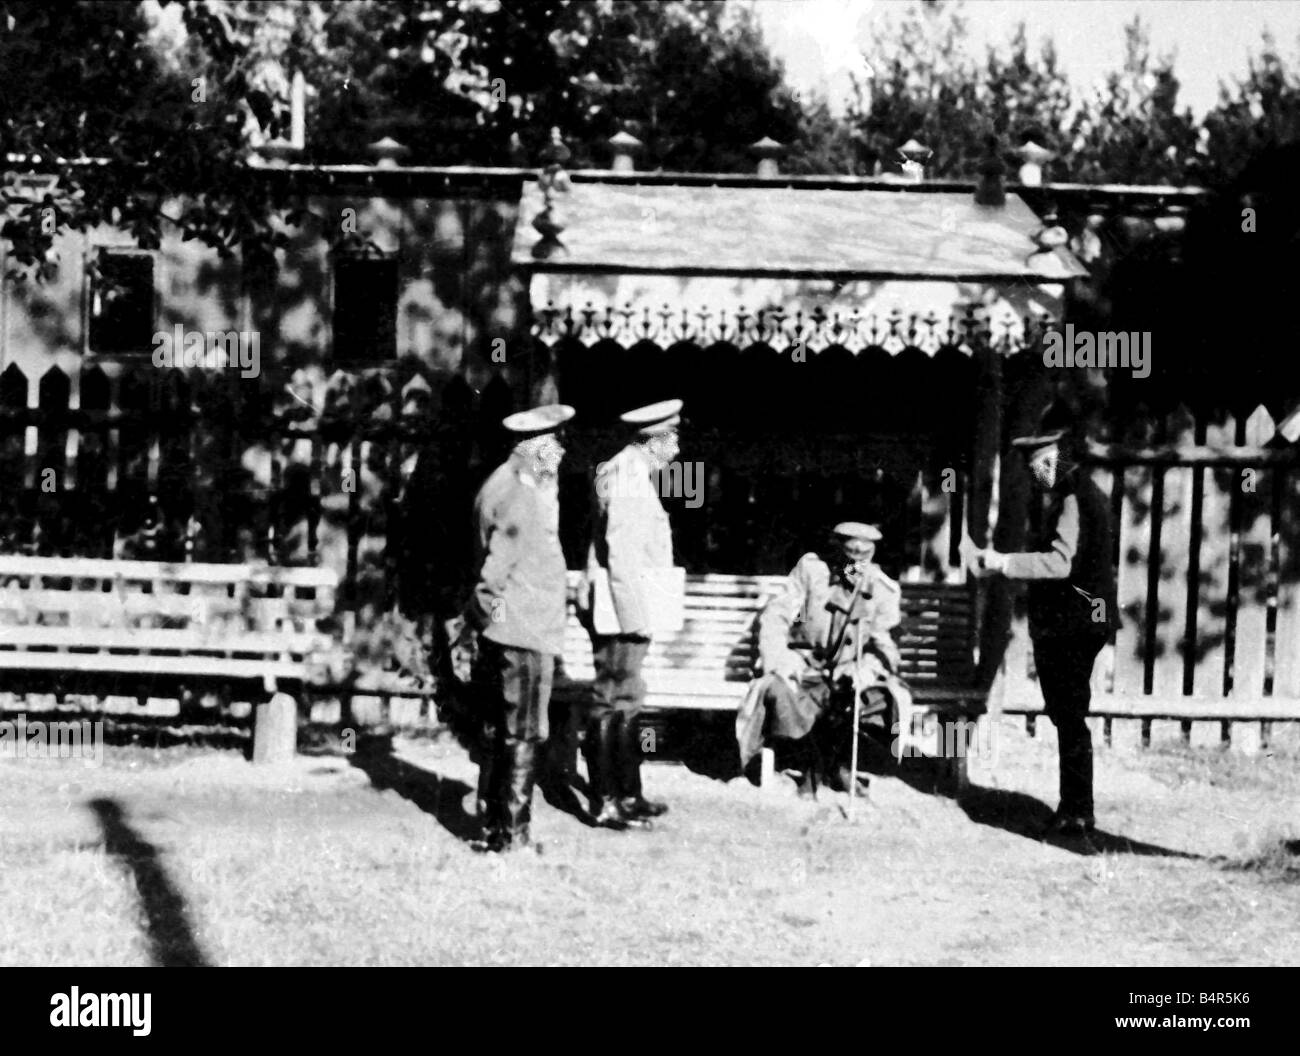 Grand Duke Nicholas of Russia pictured with some of his fellow army officers The Grand Duke fled to France in exile - Stock Image